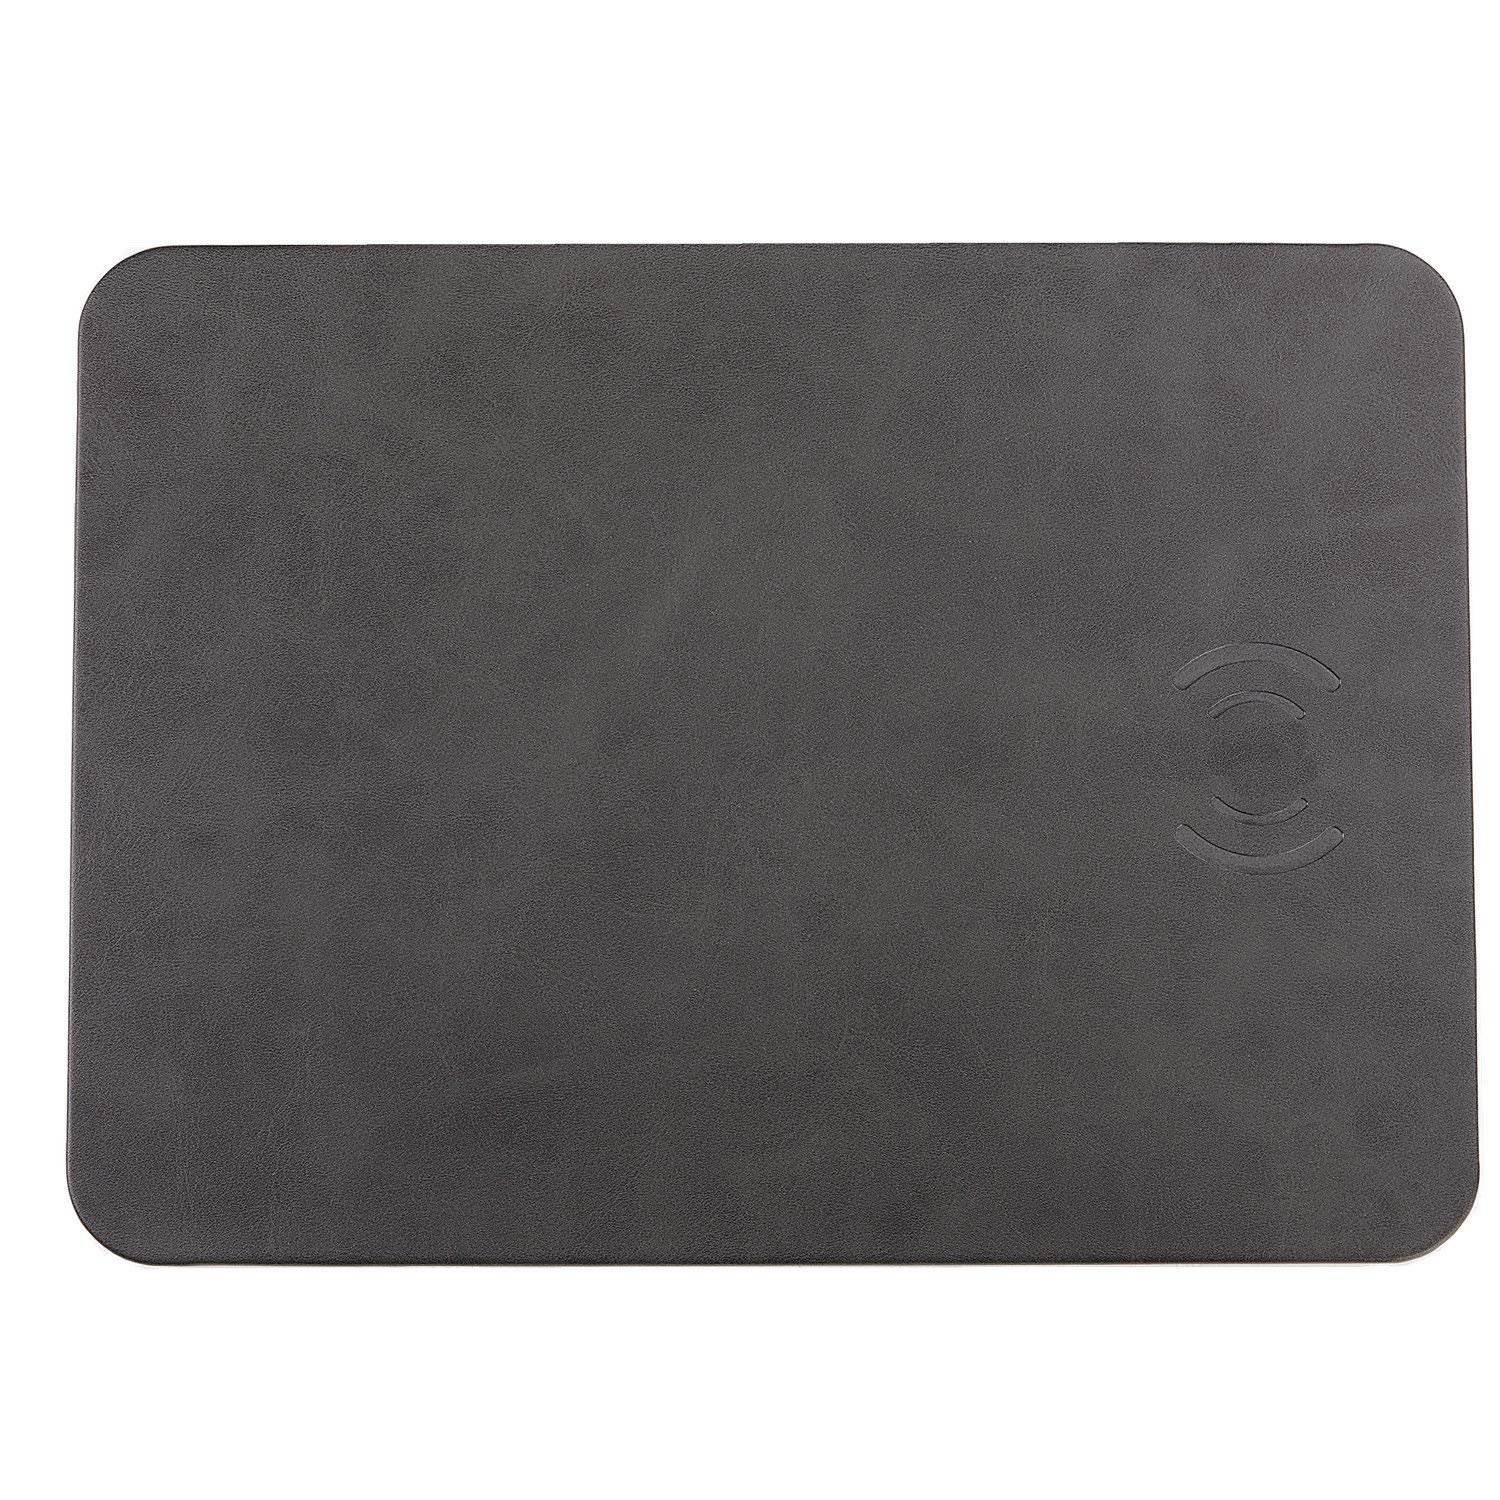 HF-WMC: Mouse pad with Wireless Charger, Qi Certified 10W Fast Wireless Charging Pad